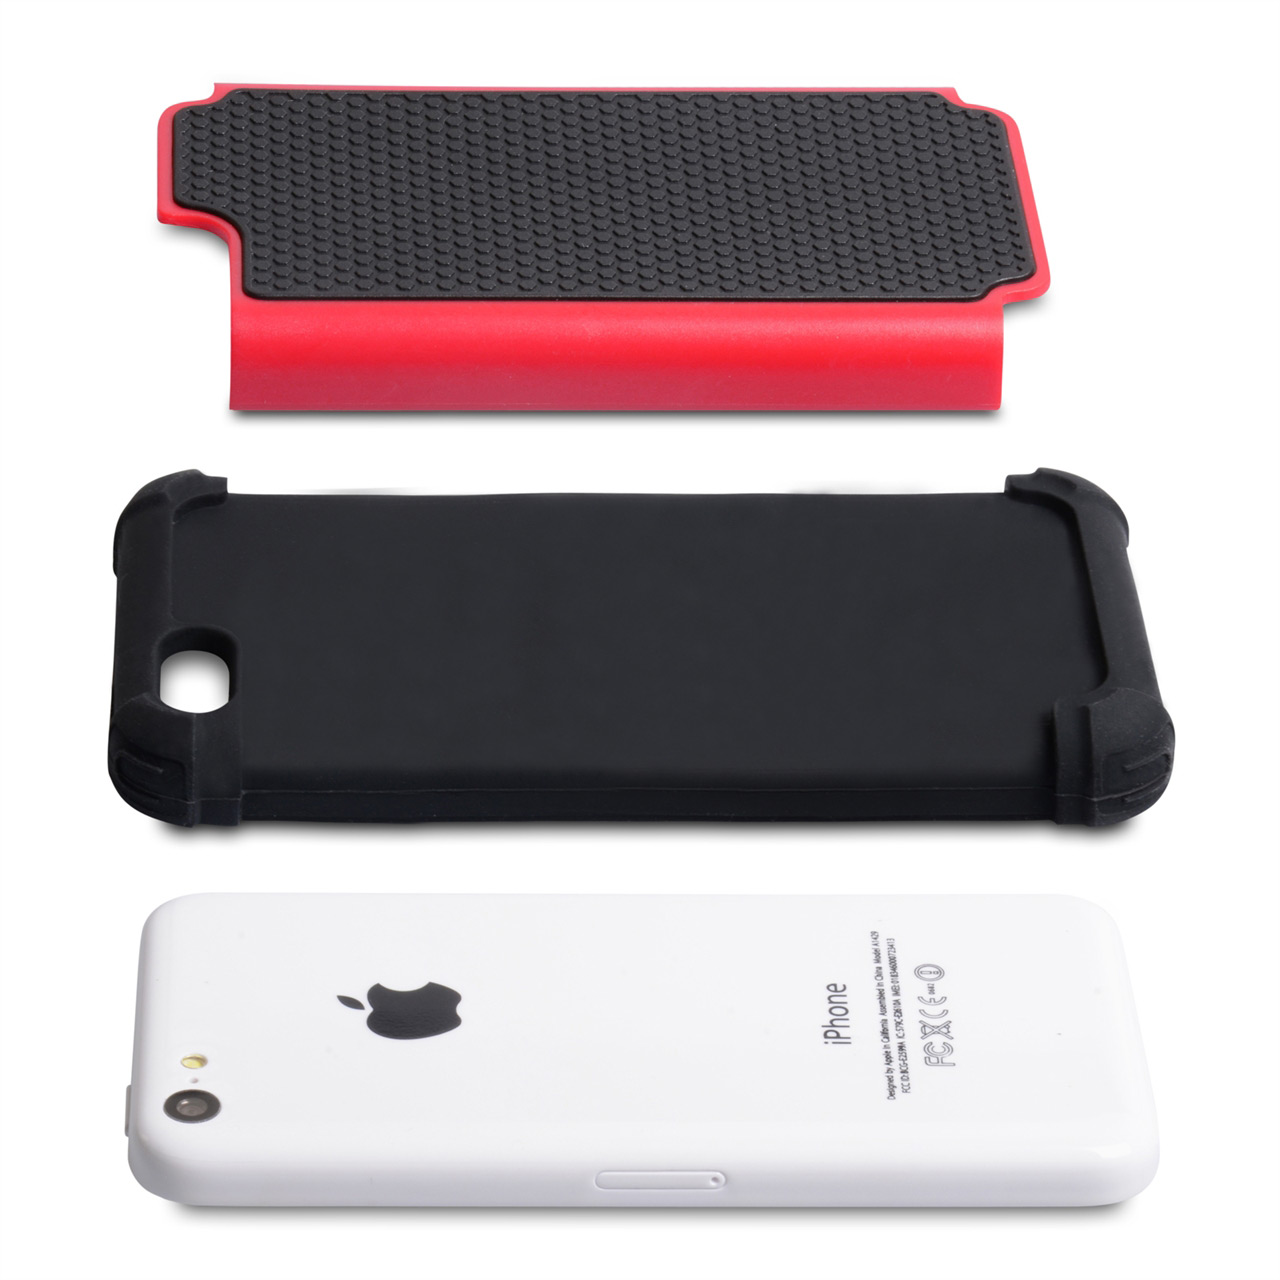 YouSave Accessories iPhone 5C Grip Combo Case - Red